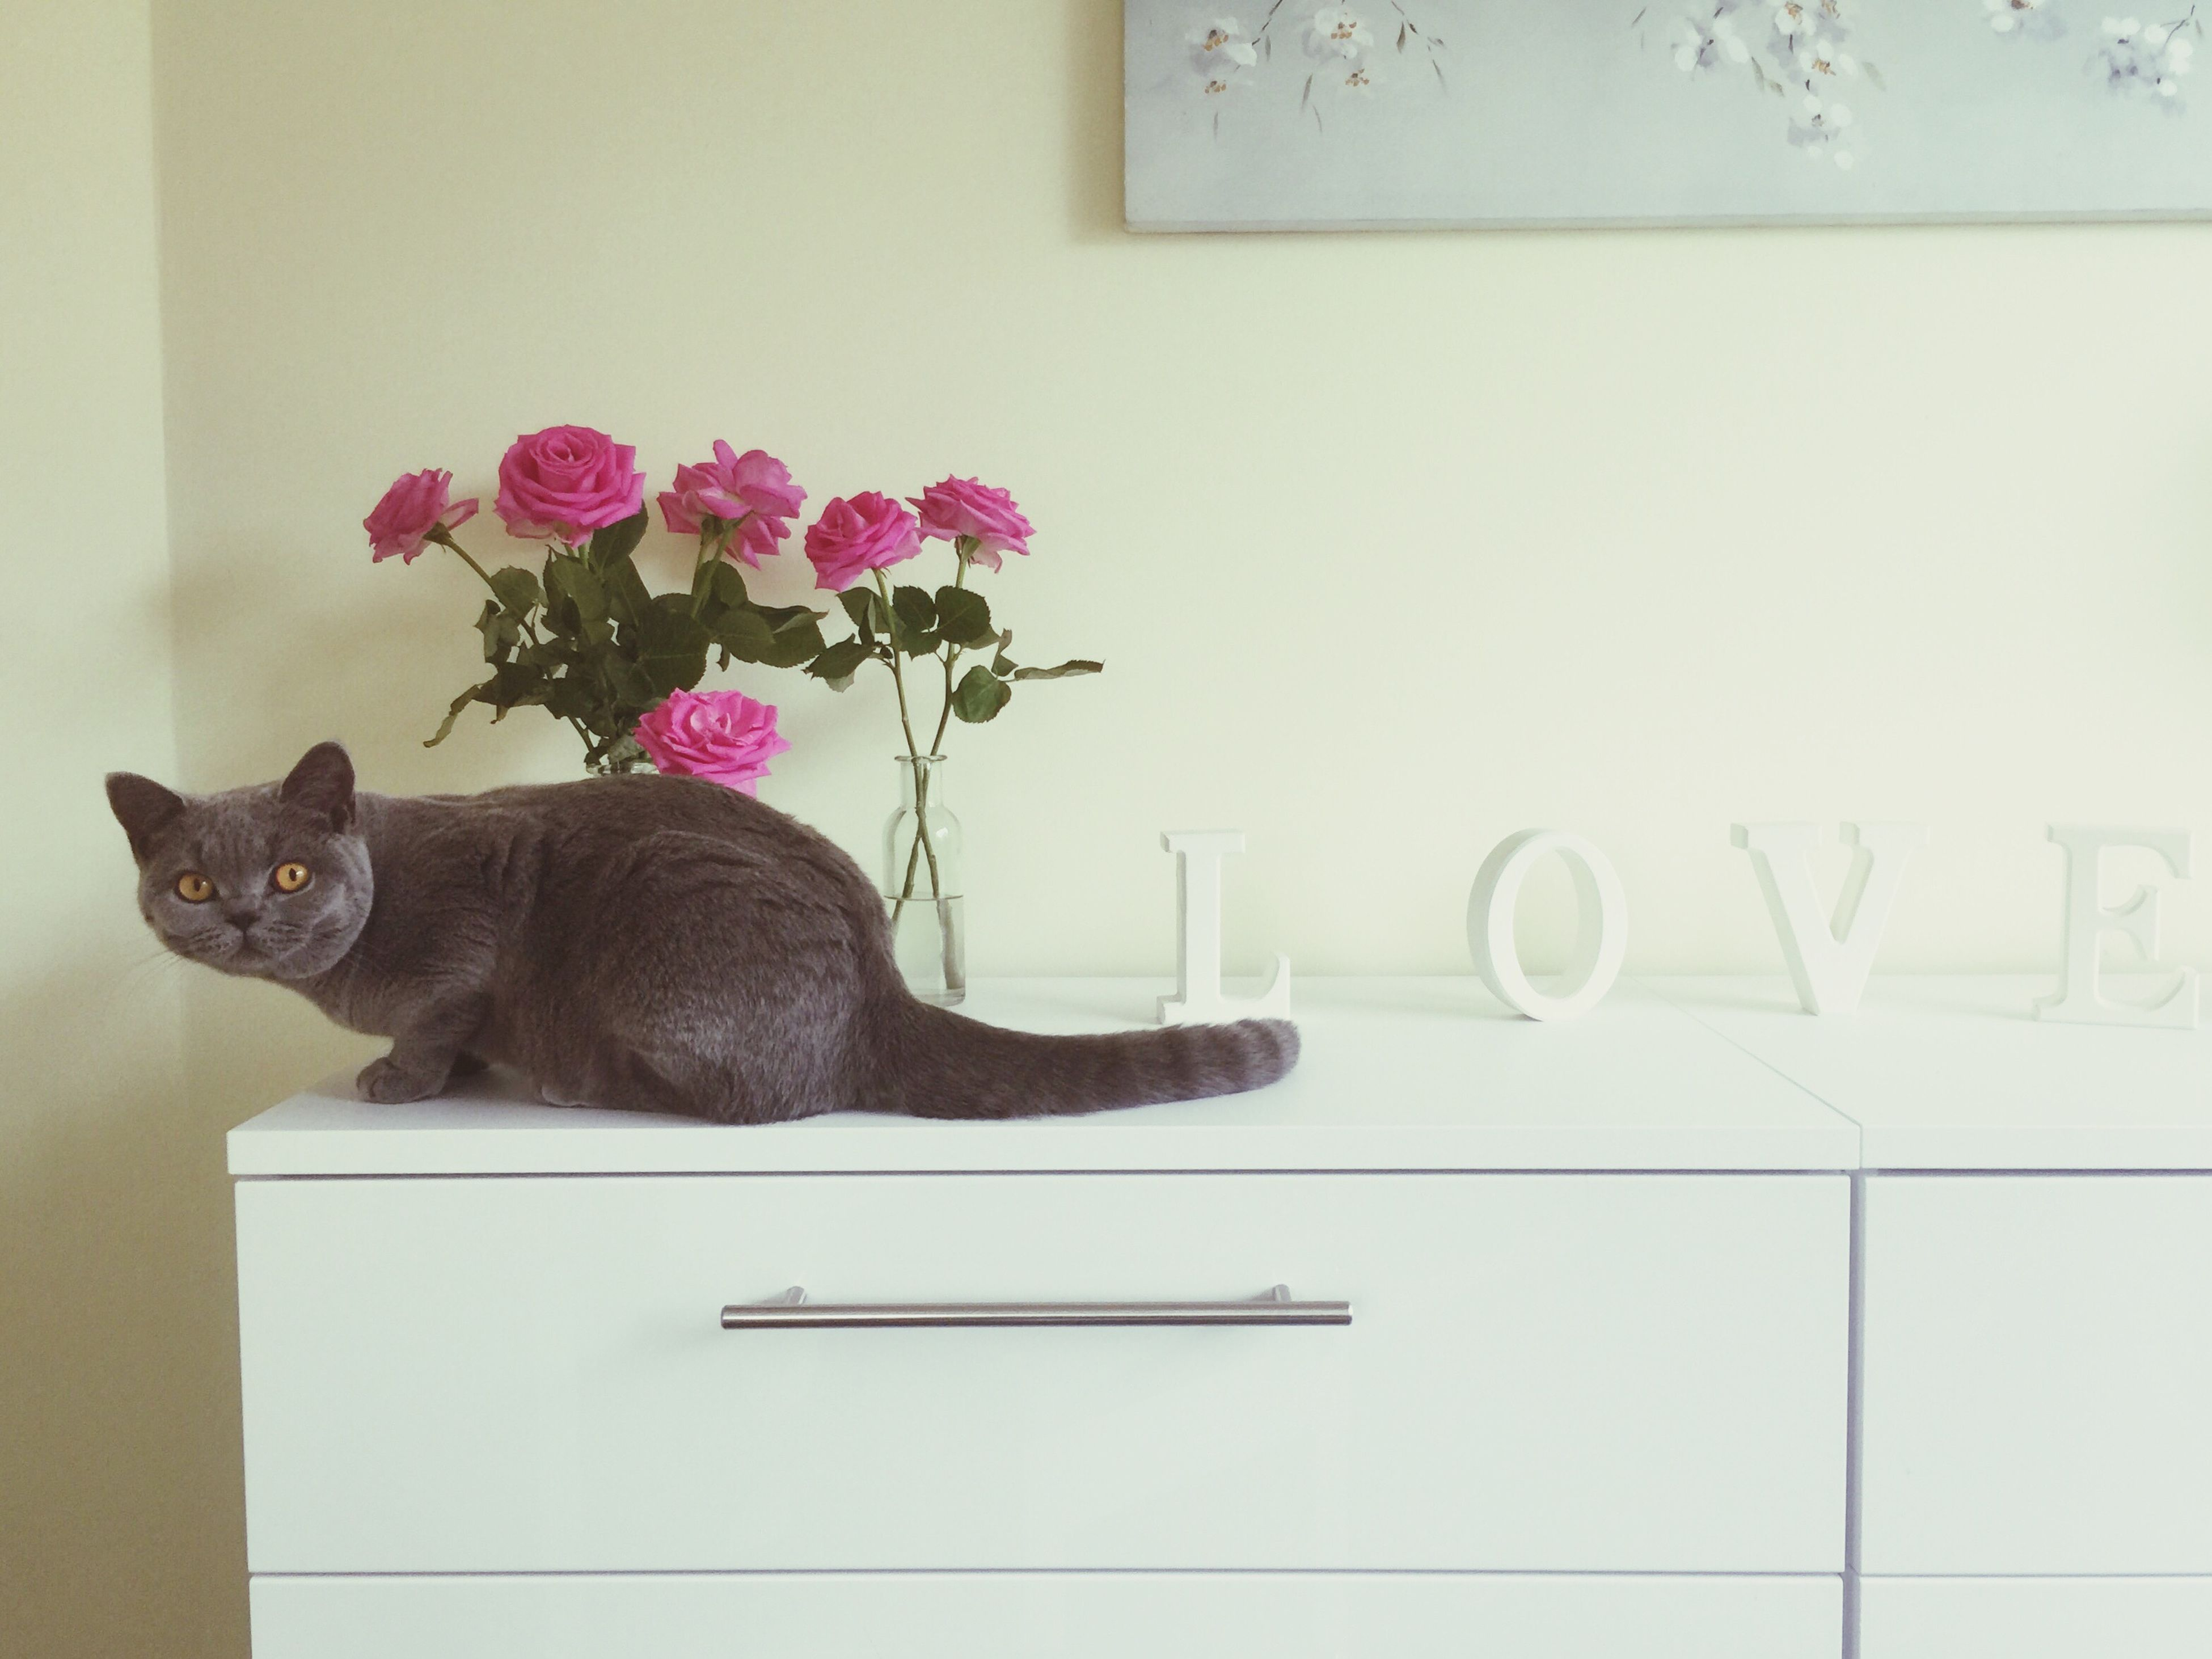 domestic animals, pets, domestic cat, animal themes, one animal, cat, mammal, indoors, feline, flower, wall - building feature, home interior, relaxation, two animals, portrait, window sill, sitting, copy space, full length, no people